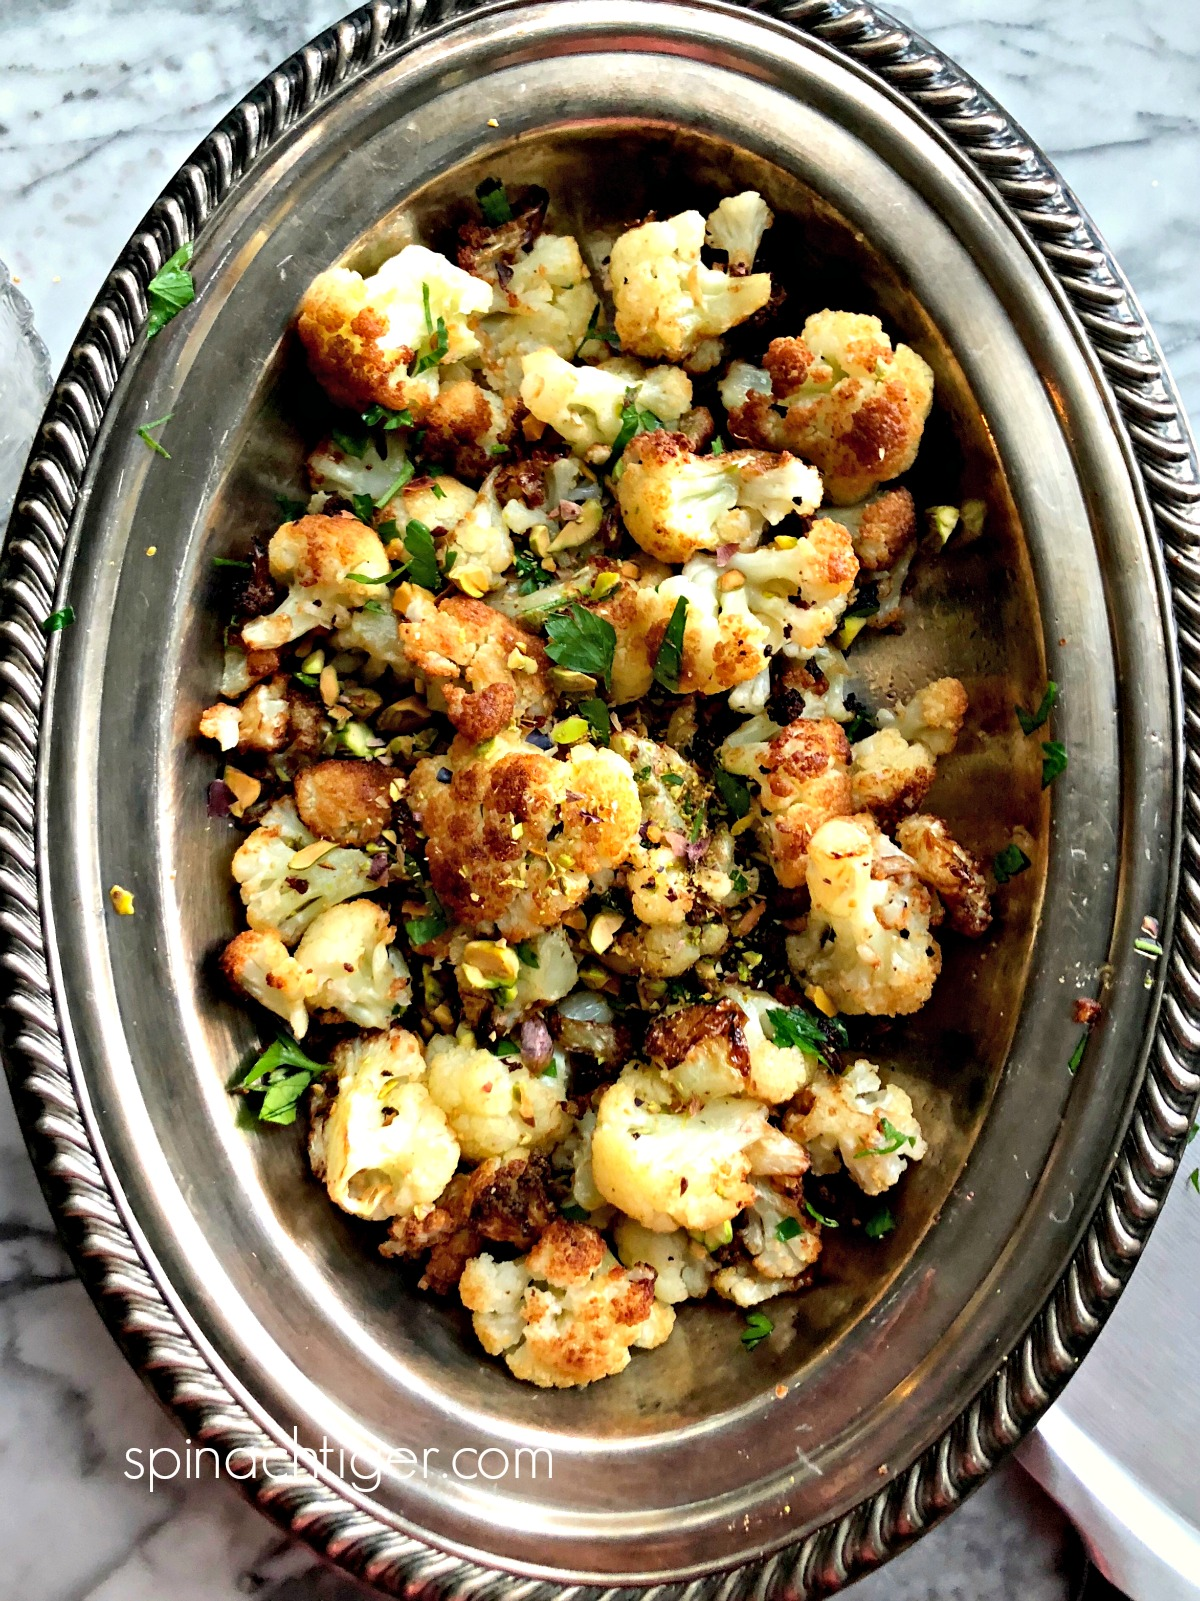 Flash Fried Cauliflower with Pistachios from Spinach Tiger #cauliflower #keto #low-carbrecipe